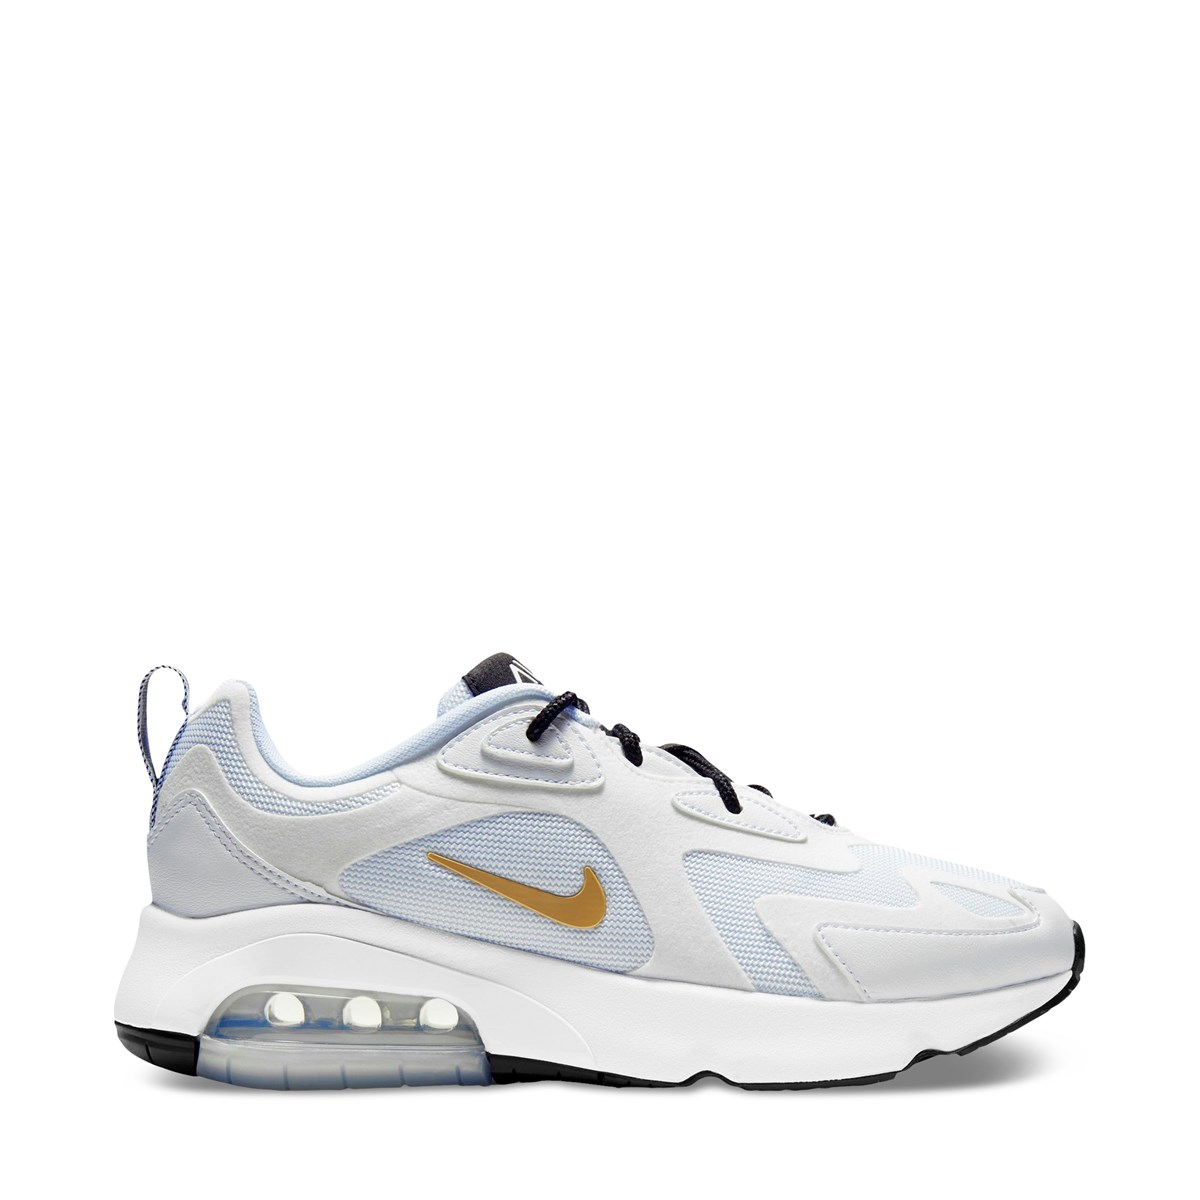 Women's Air Max 200 Sneakers in White